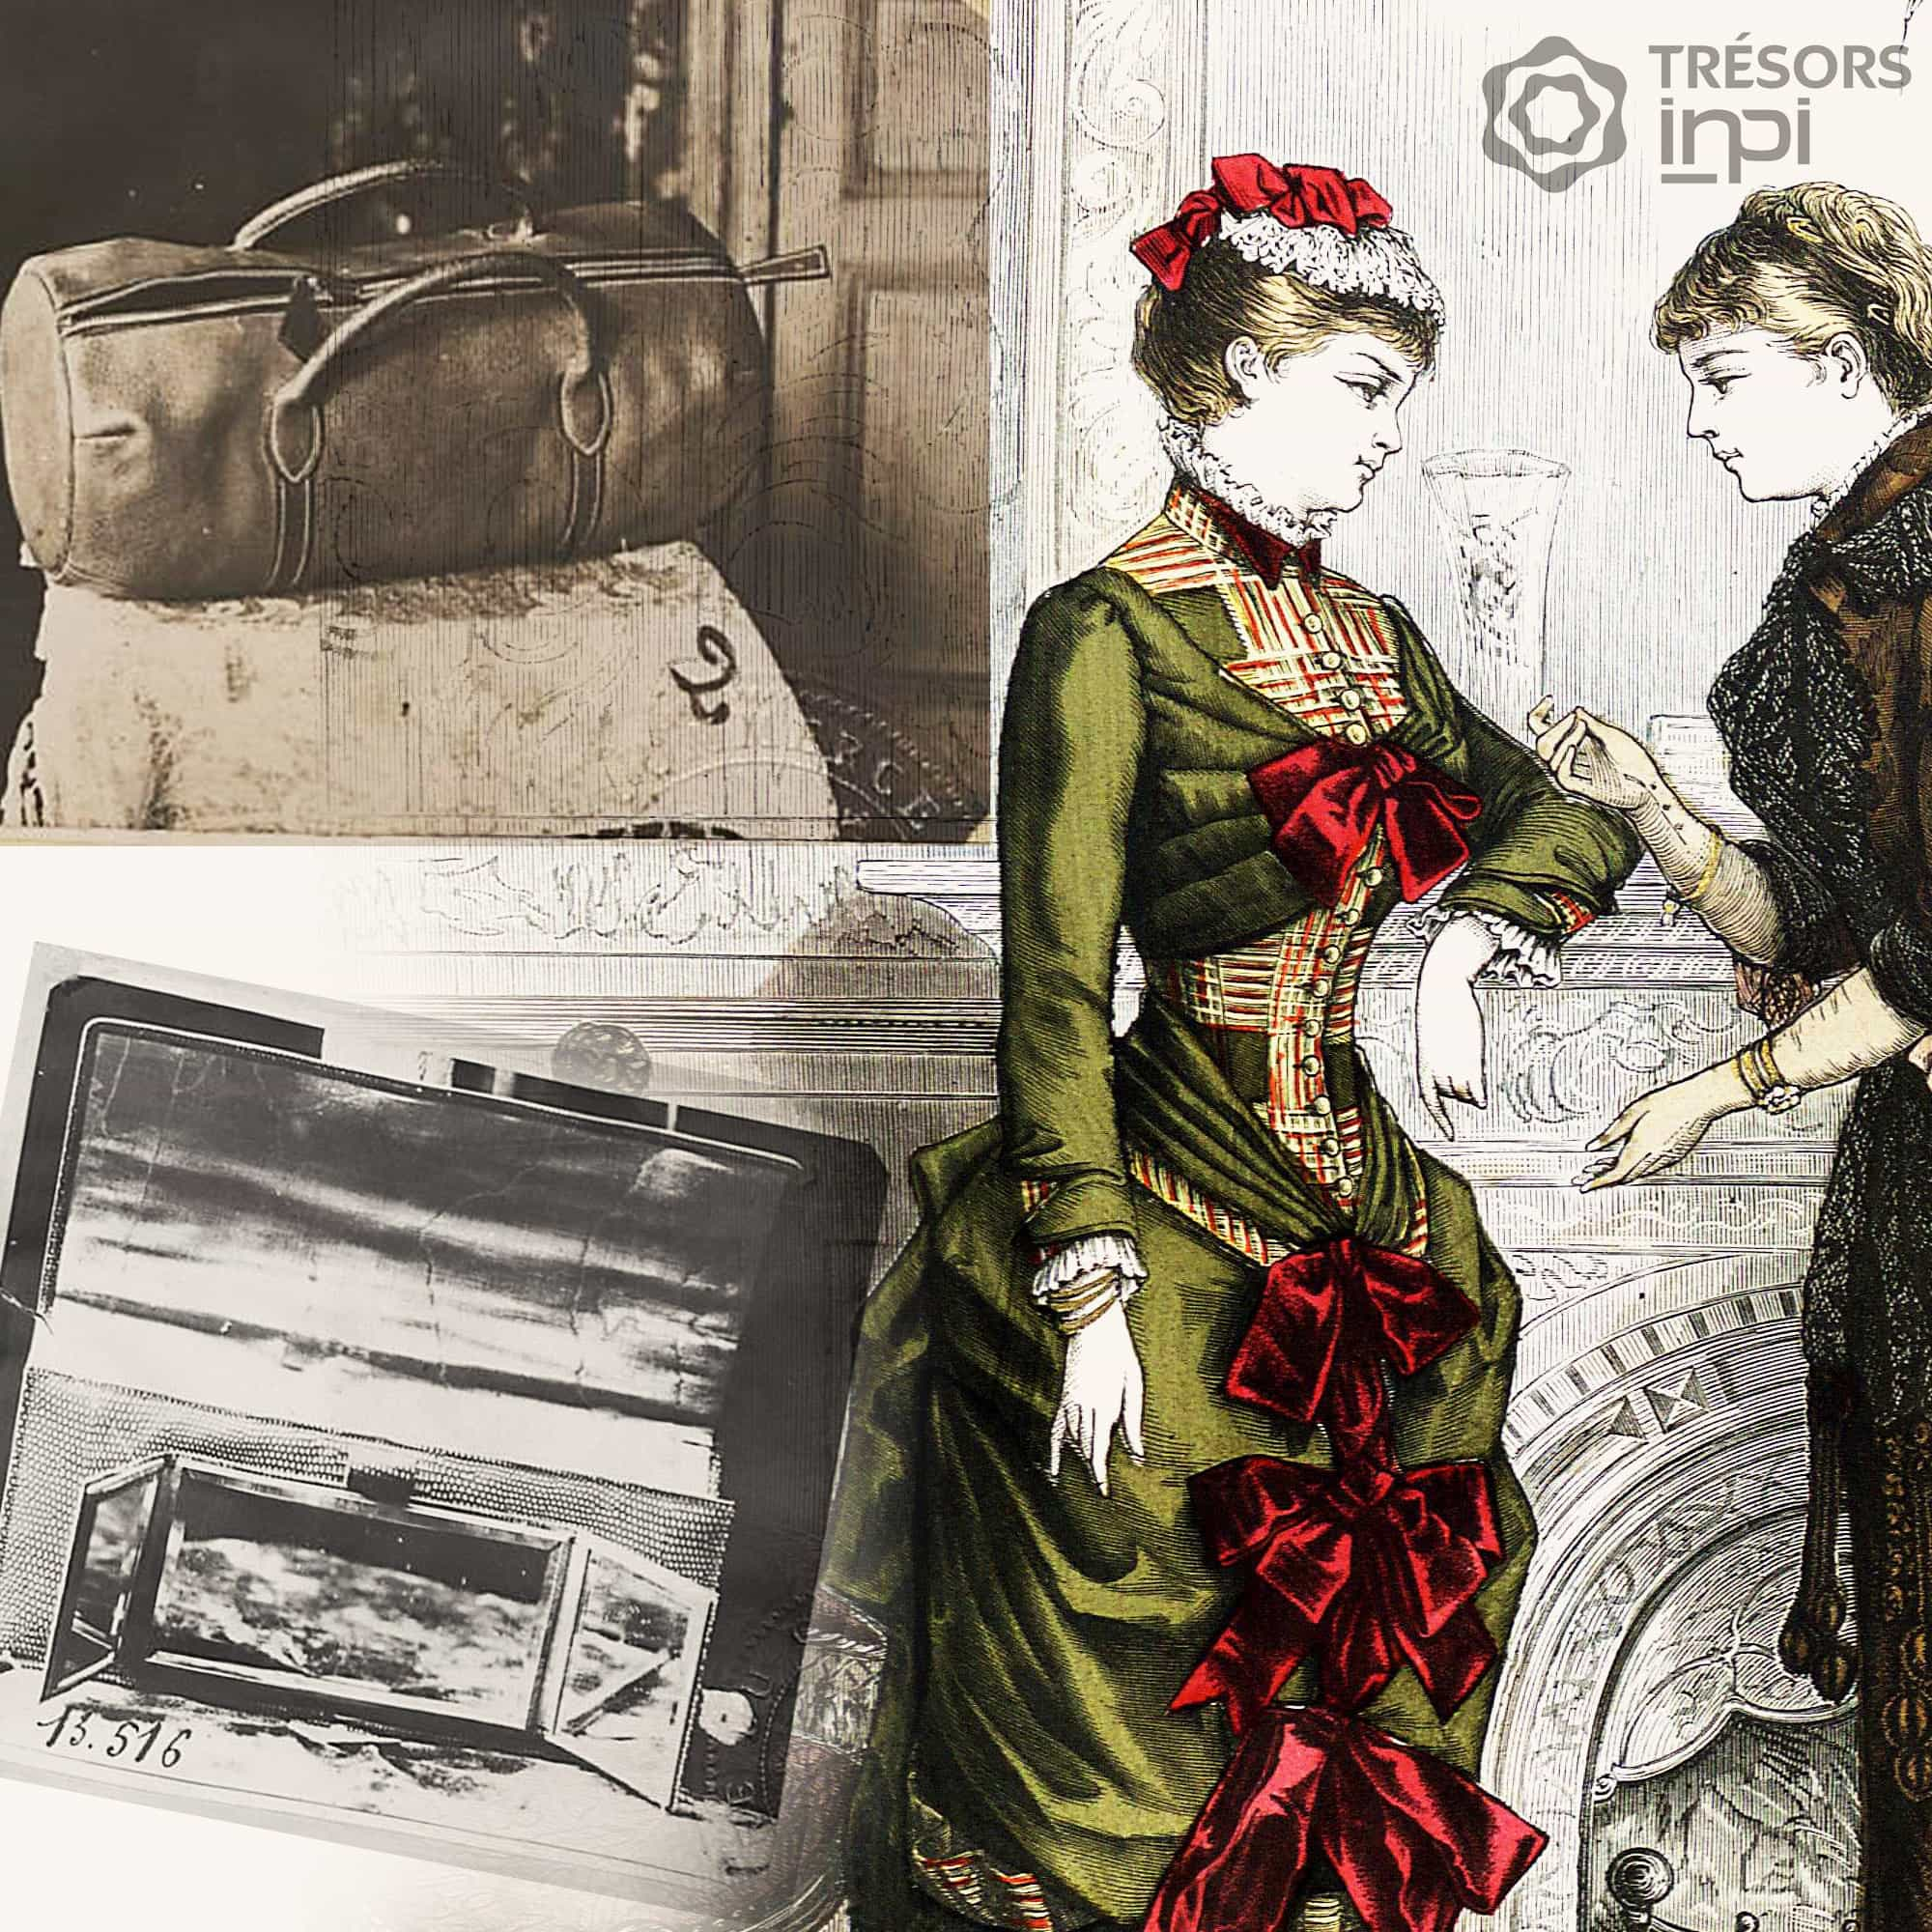 History of handbag - INPI treasure by RUNWAY MAGAZINE